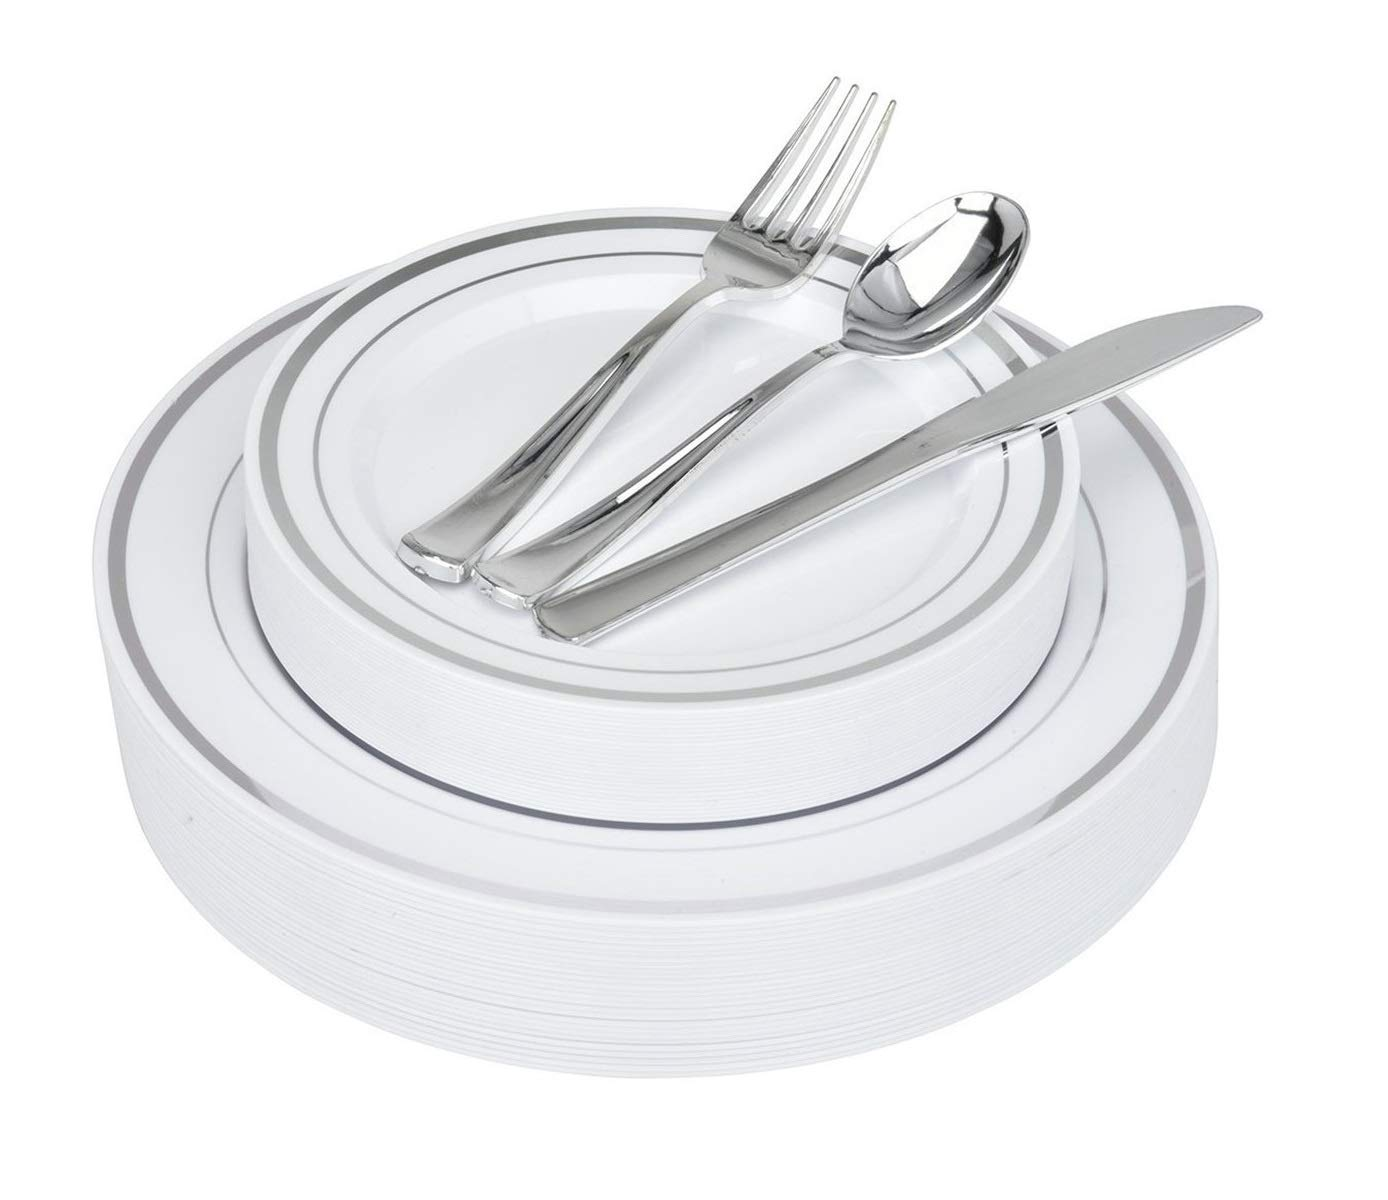 125-Piece Elegant Plastic Dinnerware & Cutlery Set Service for 25 Disposable Place Setting Includes: 25 Dinner Plates, 25 Dessert Plates, 25 Forks, 25 Knives, 25 Spoons (Silver Rim) - Stock Your Home by Stock Your Home